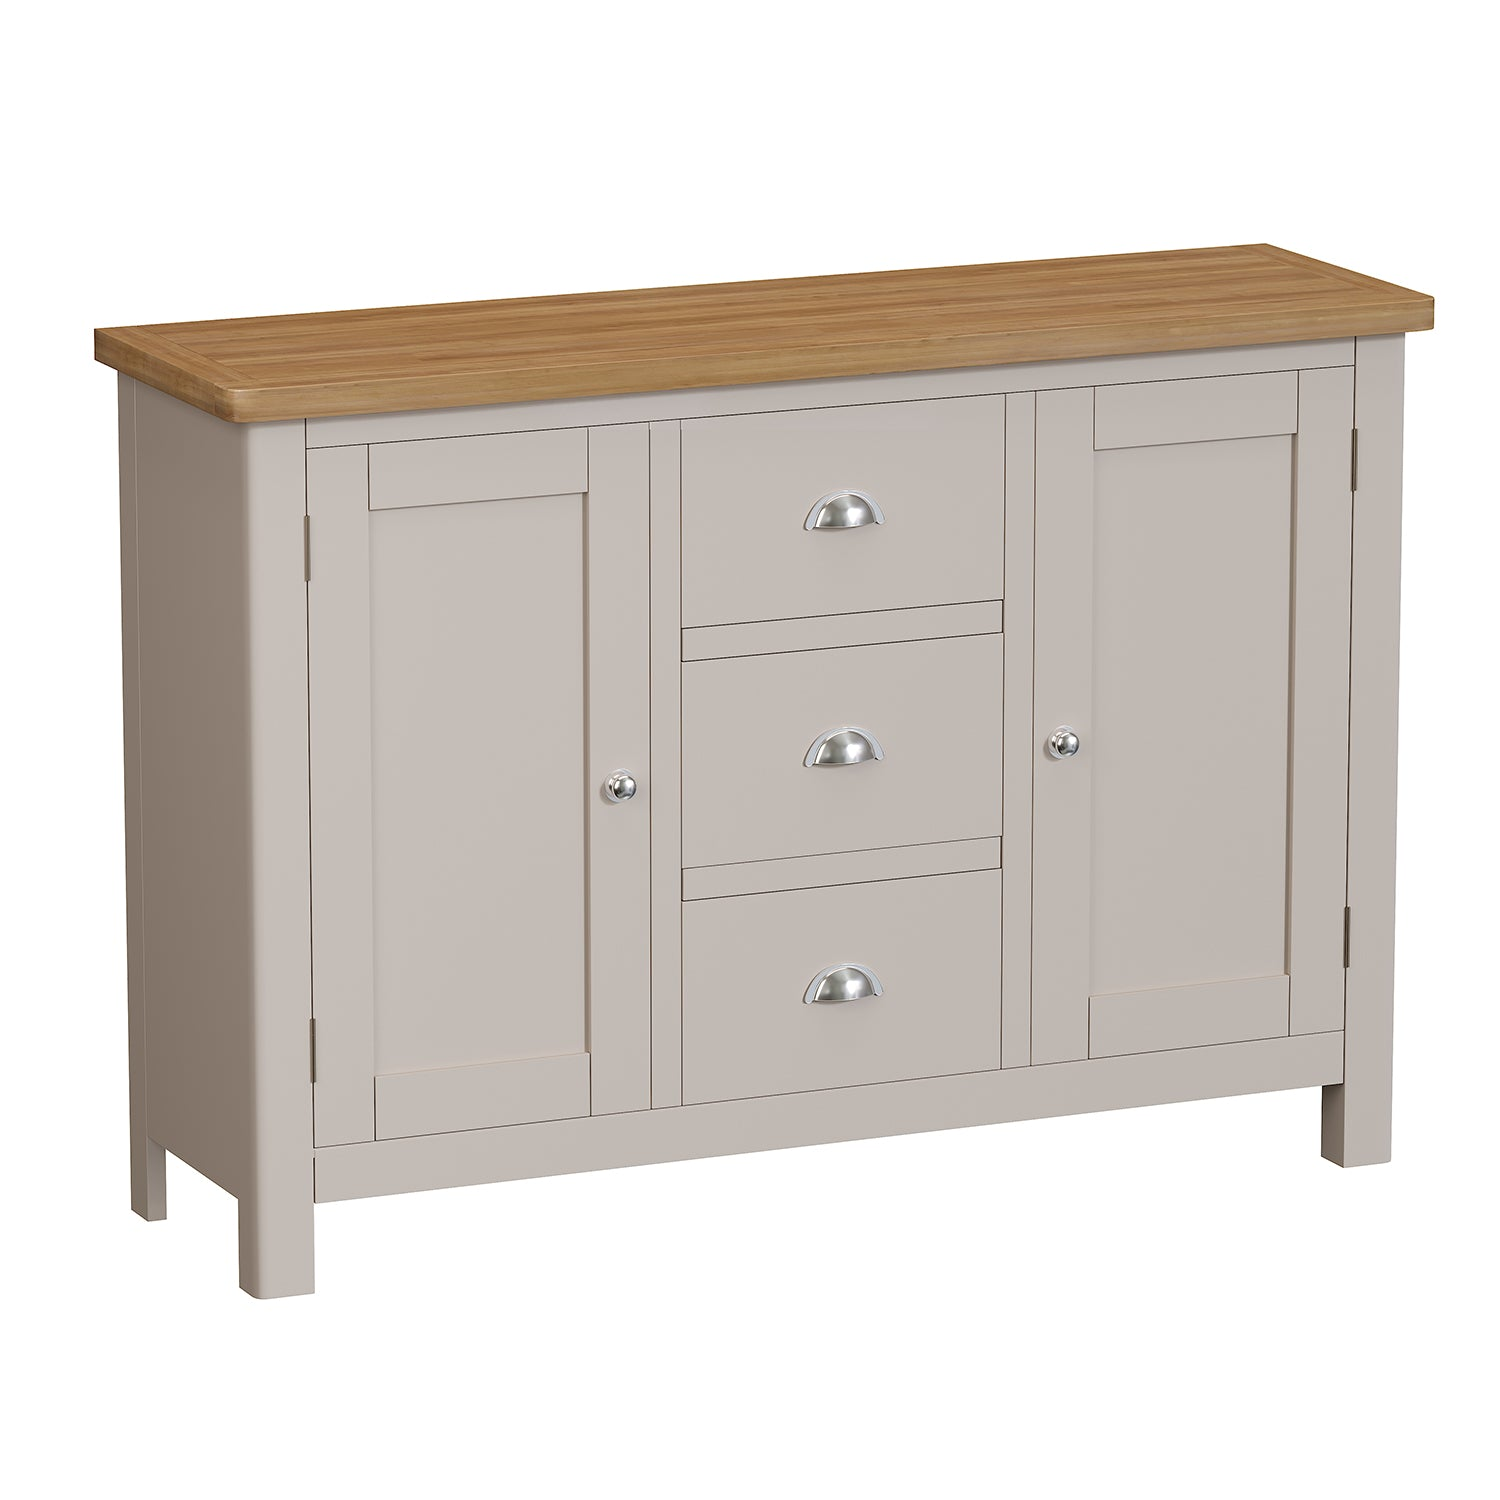 Pershore Painted Sideboard - Large